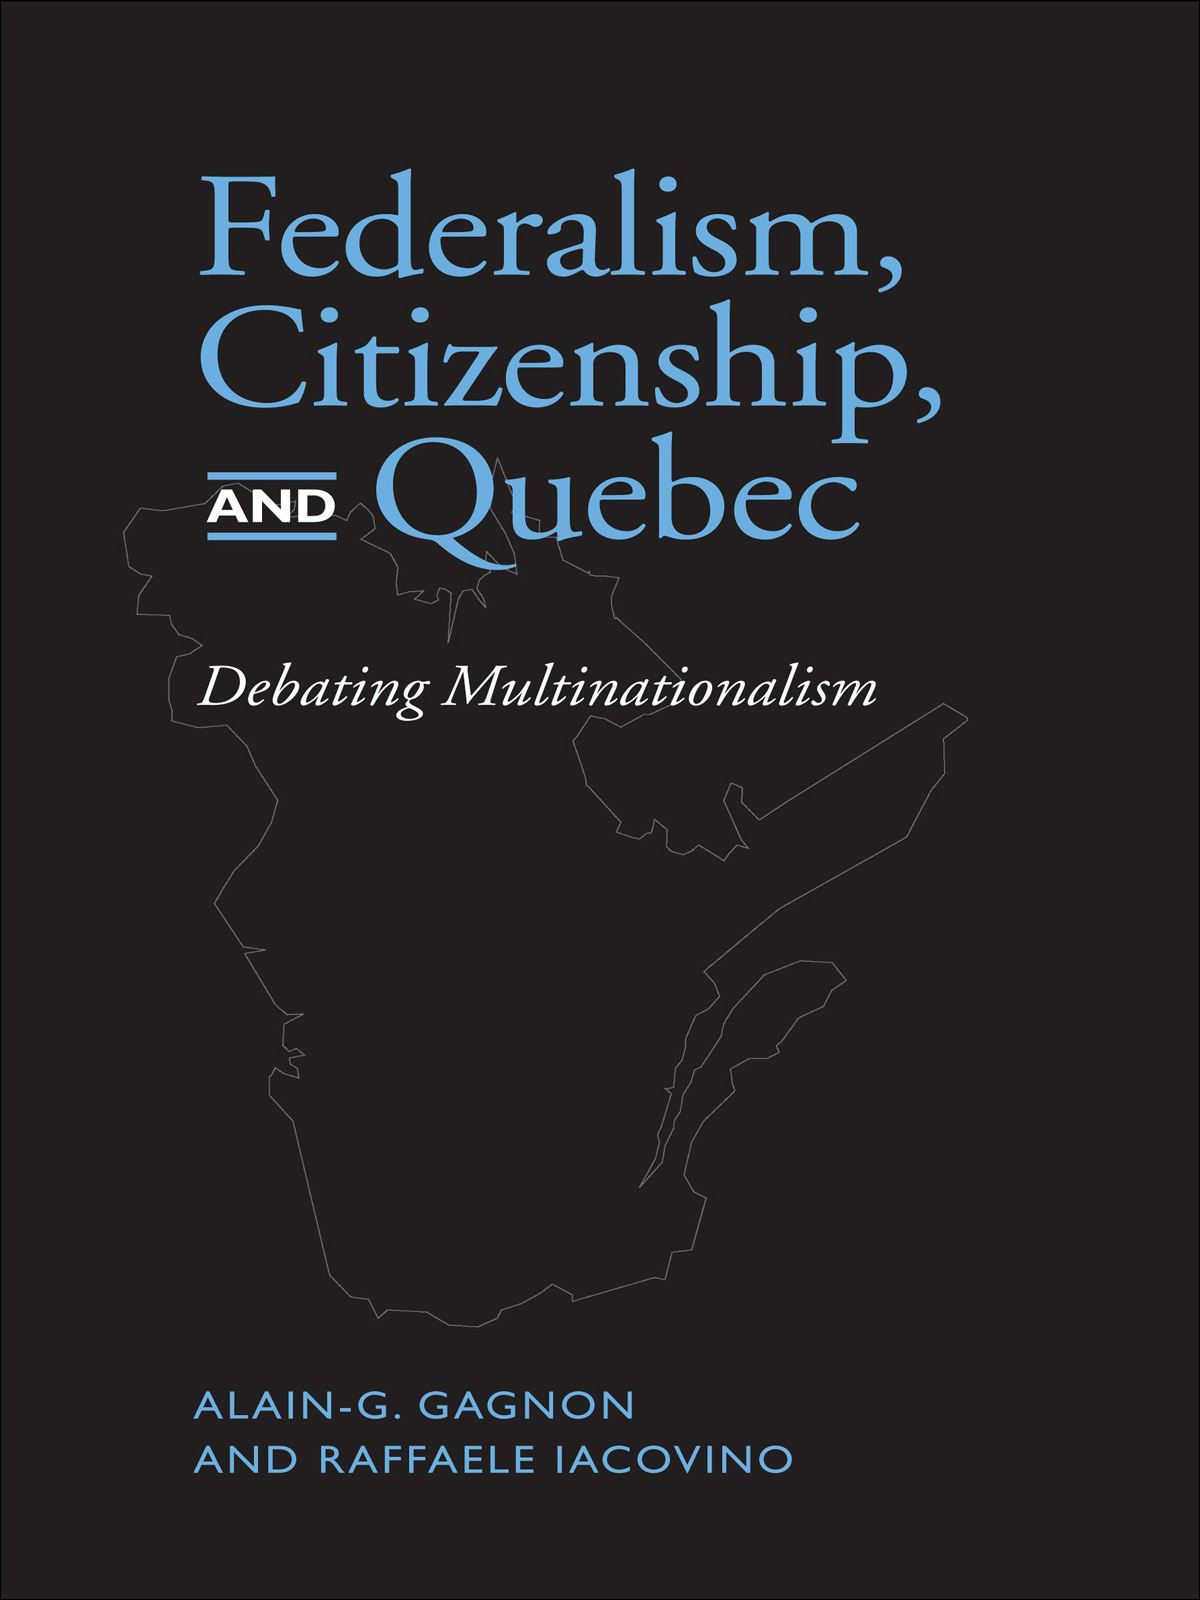 Federalism, Citizenship and Quebec